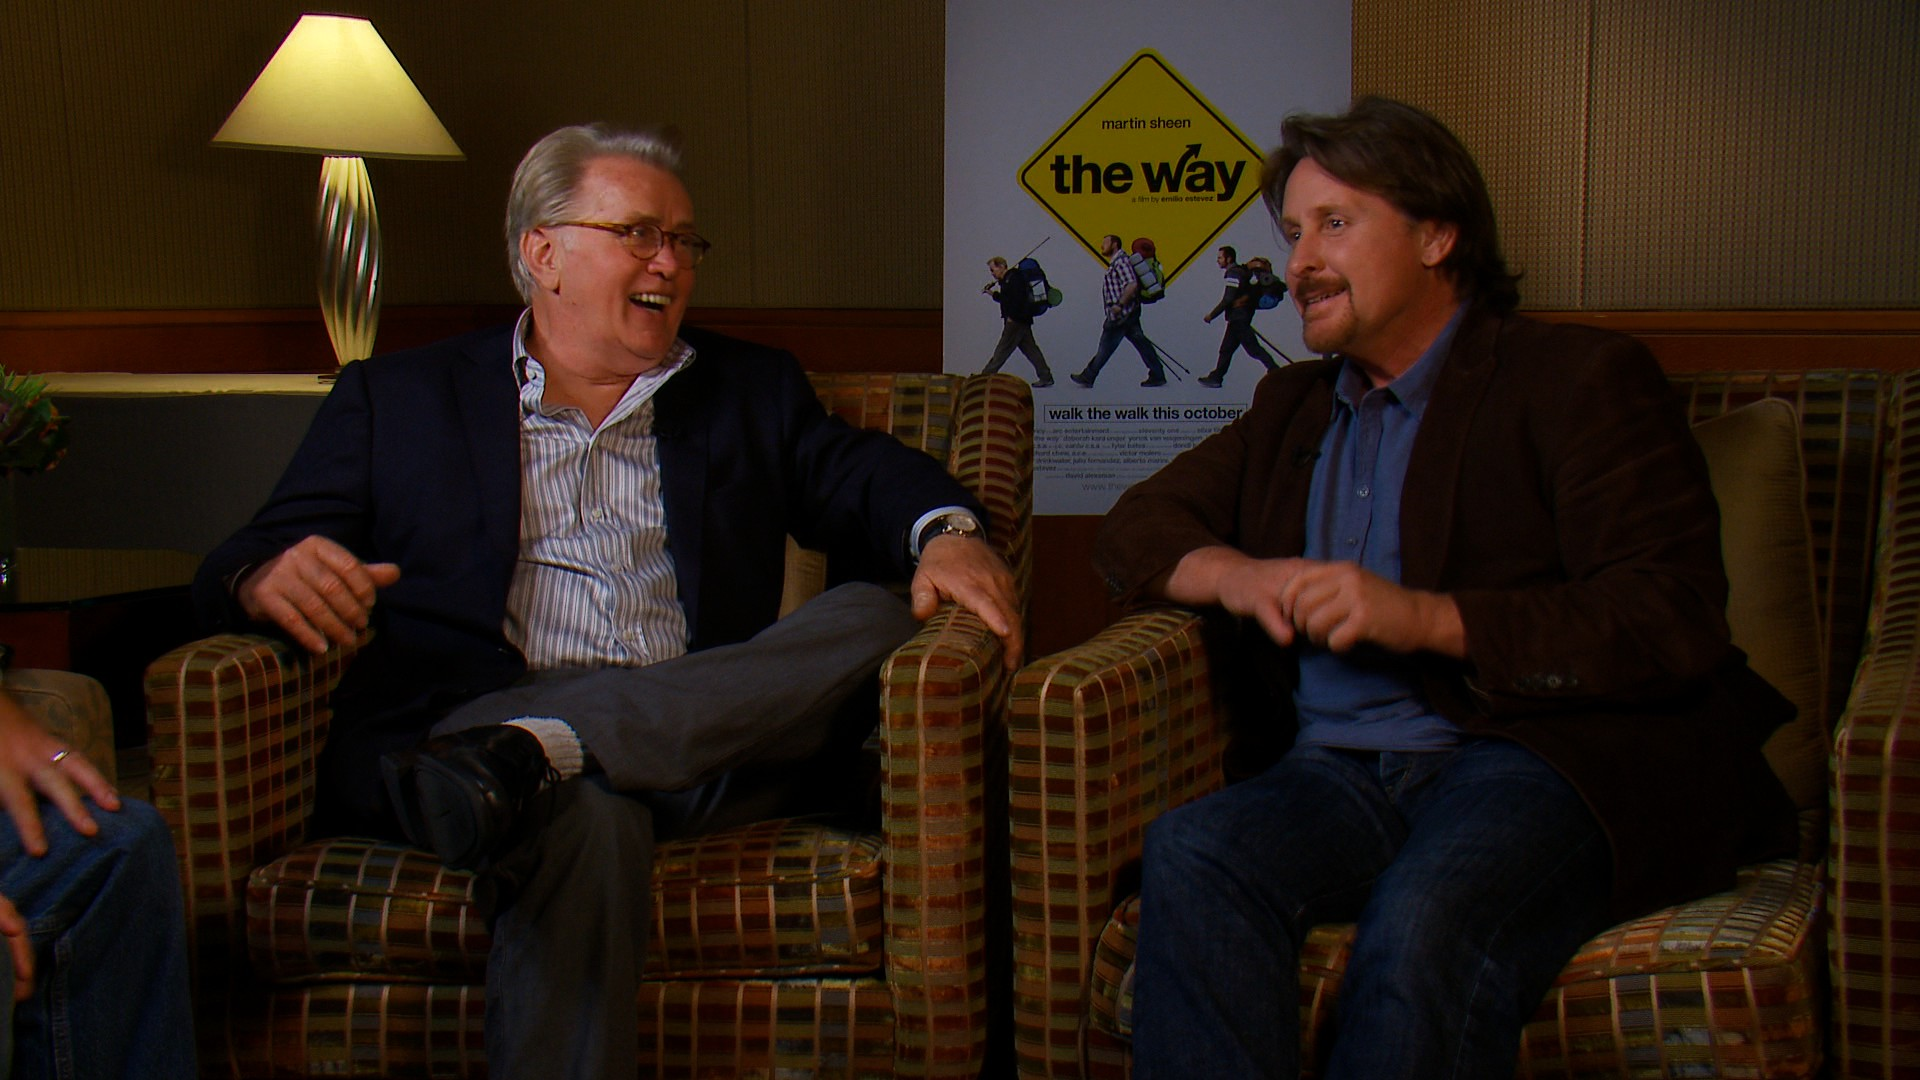 Martin Sheen & Emilio Estevez